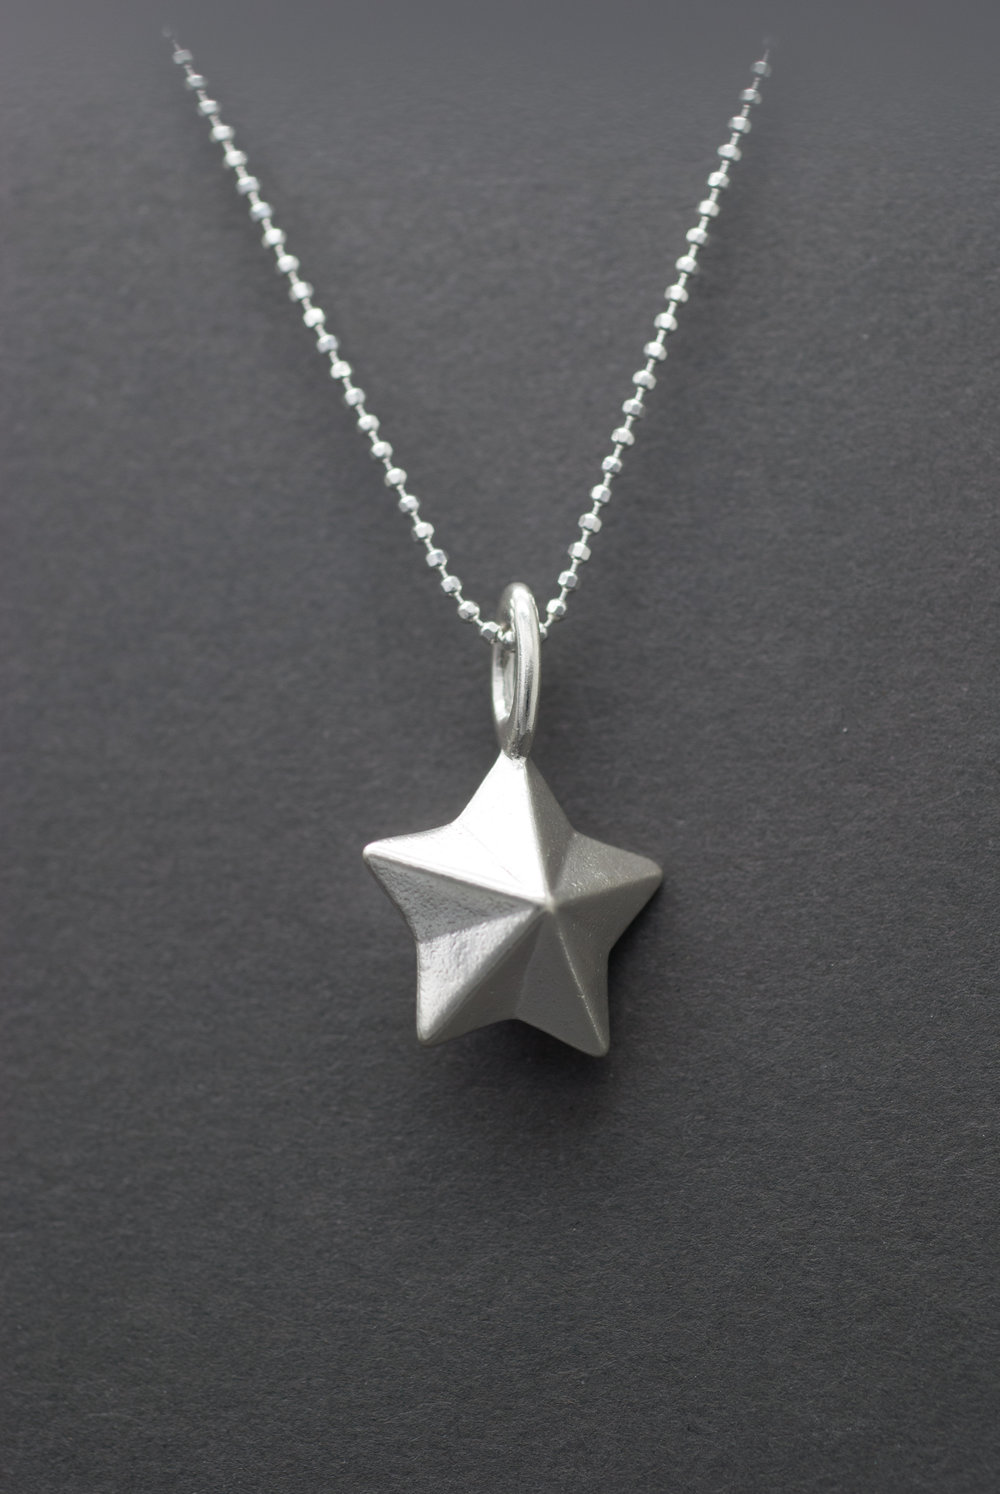 star necklace.jpg